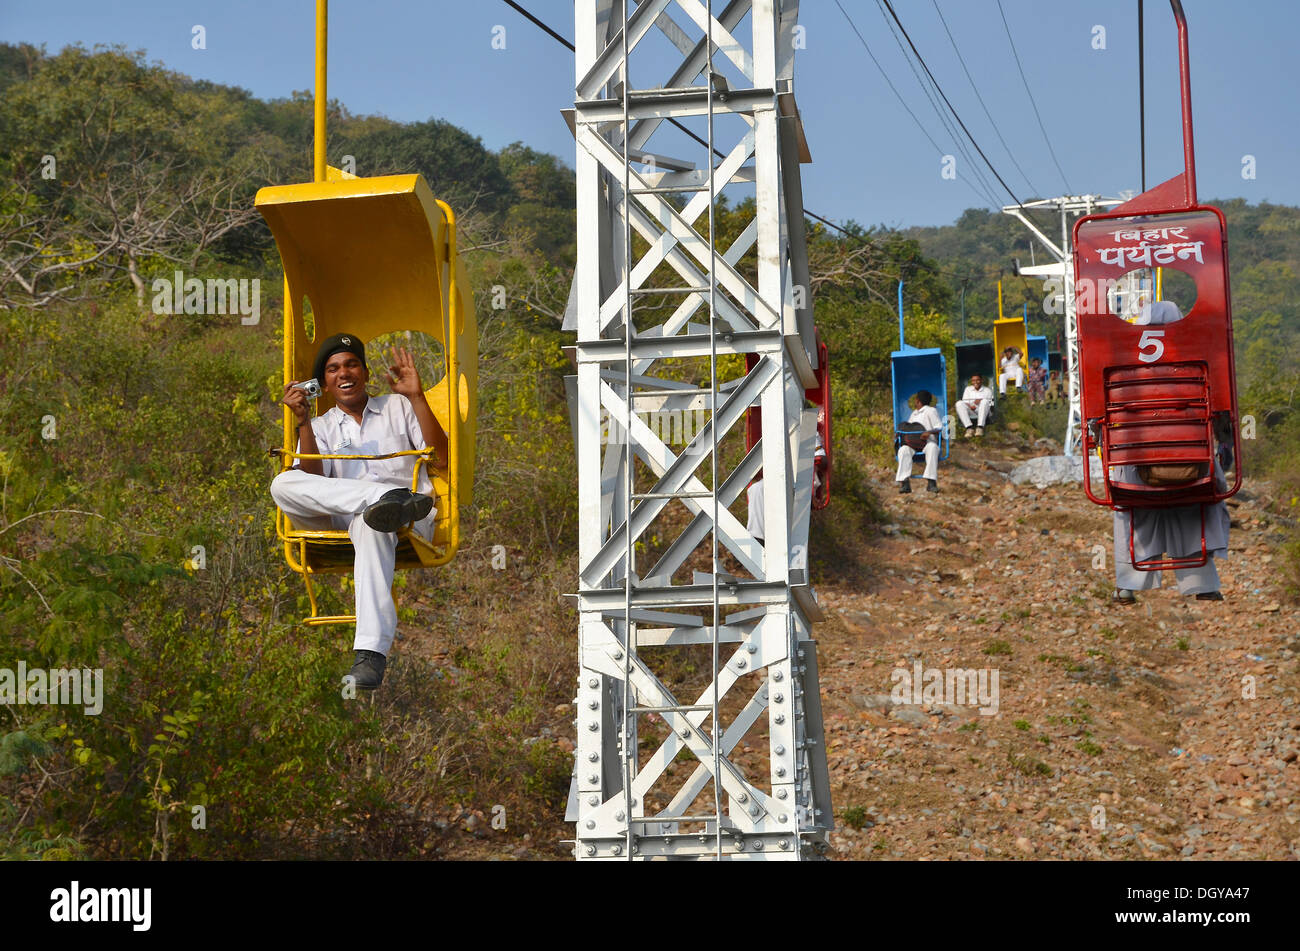 Cable car, chairlift, Indian man and woman sitting in brightly painted one-person chairlifts at Vulture Peak Stock Photo